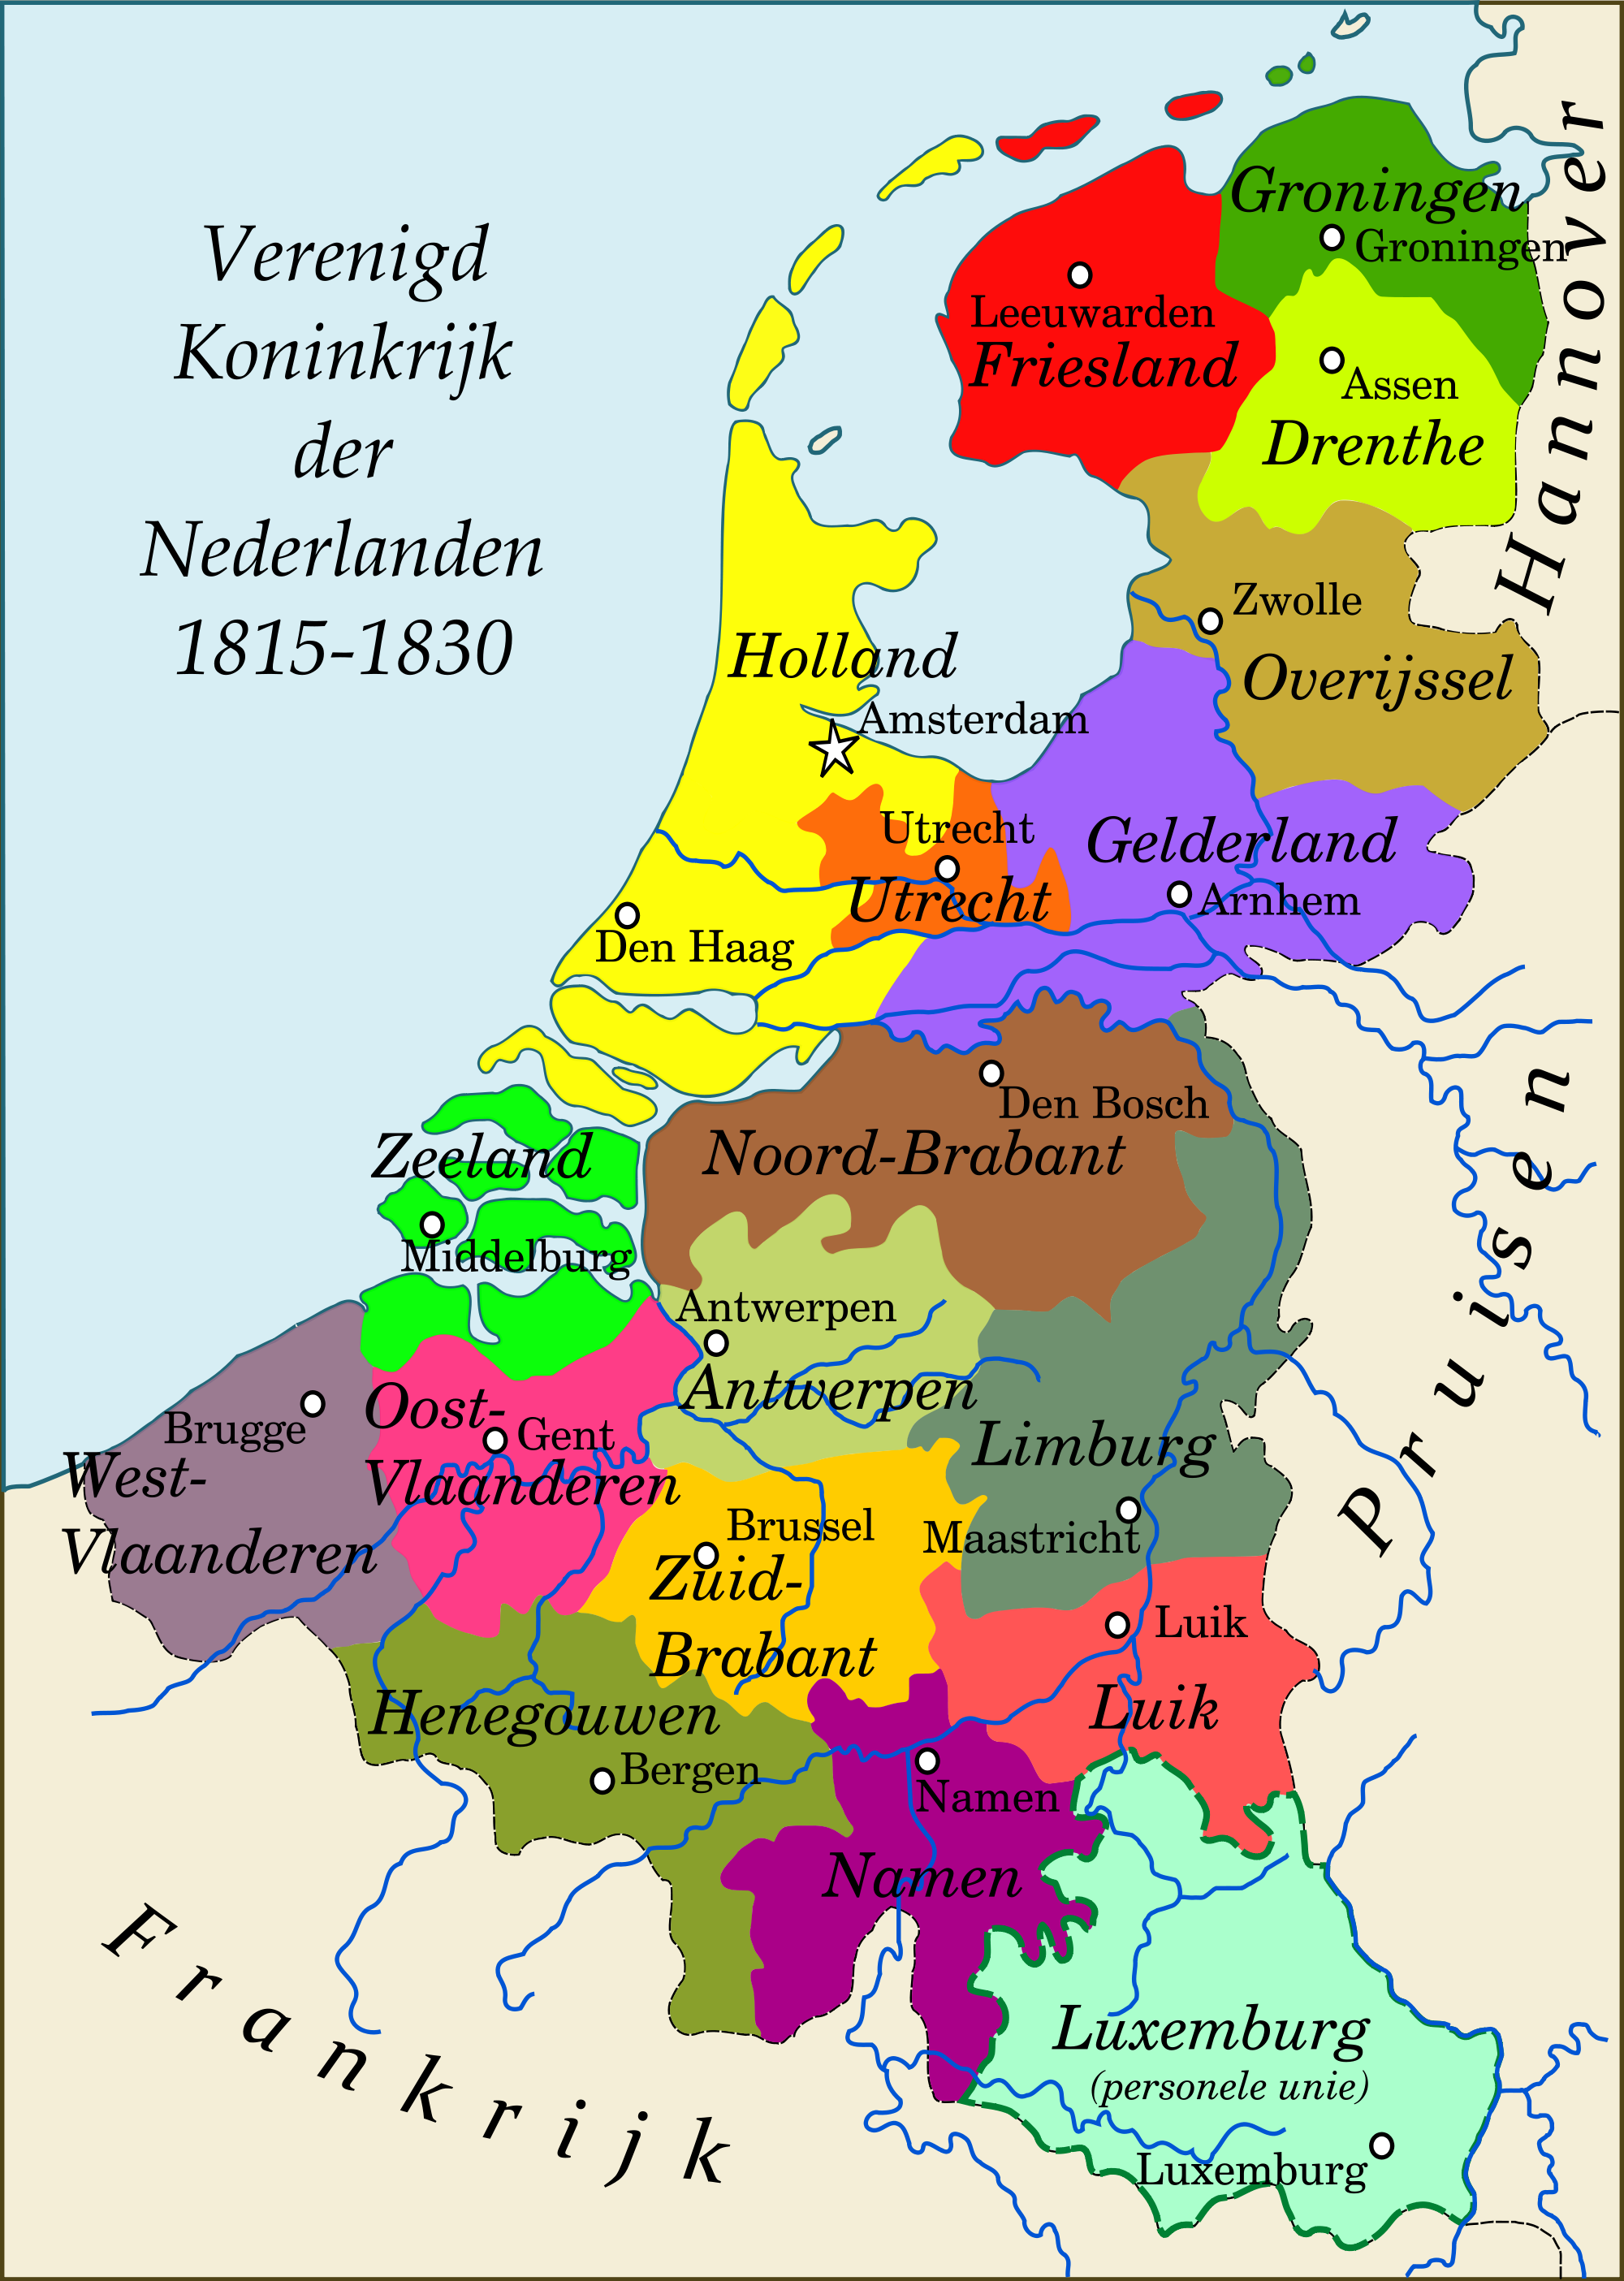 United Kingdom of the Netherlands 18151830 Ruled by King Willem